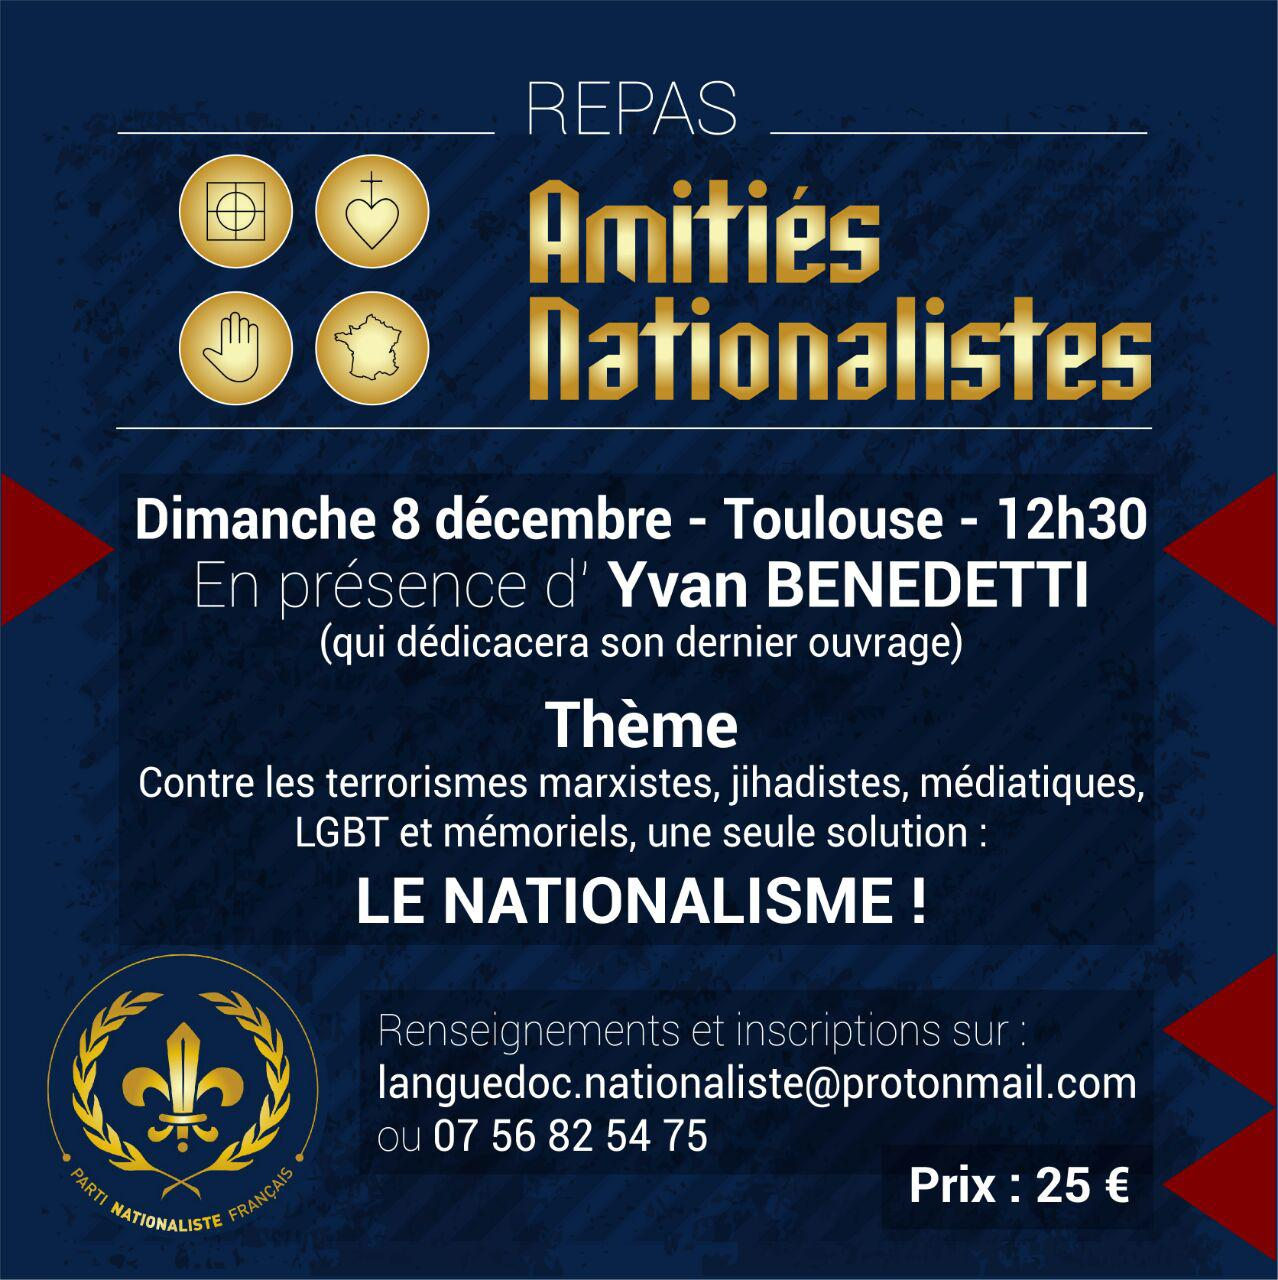 toulouse-benedetti-08122019